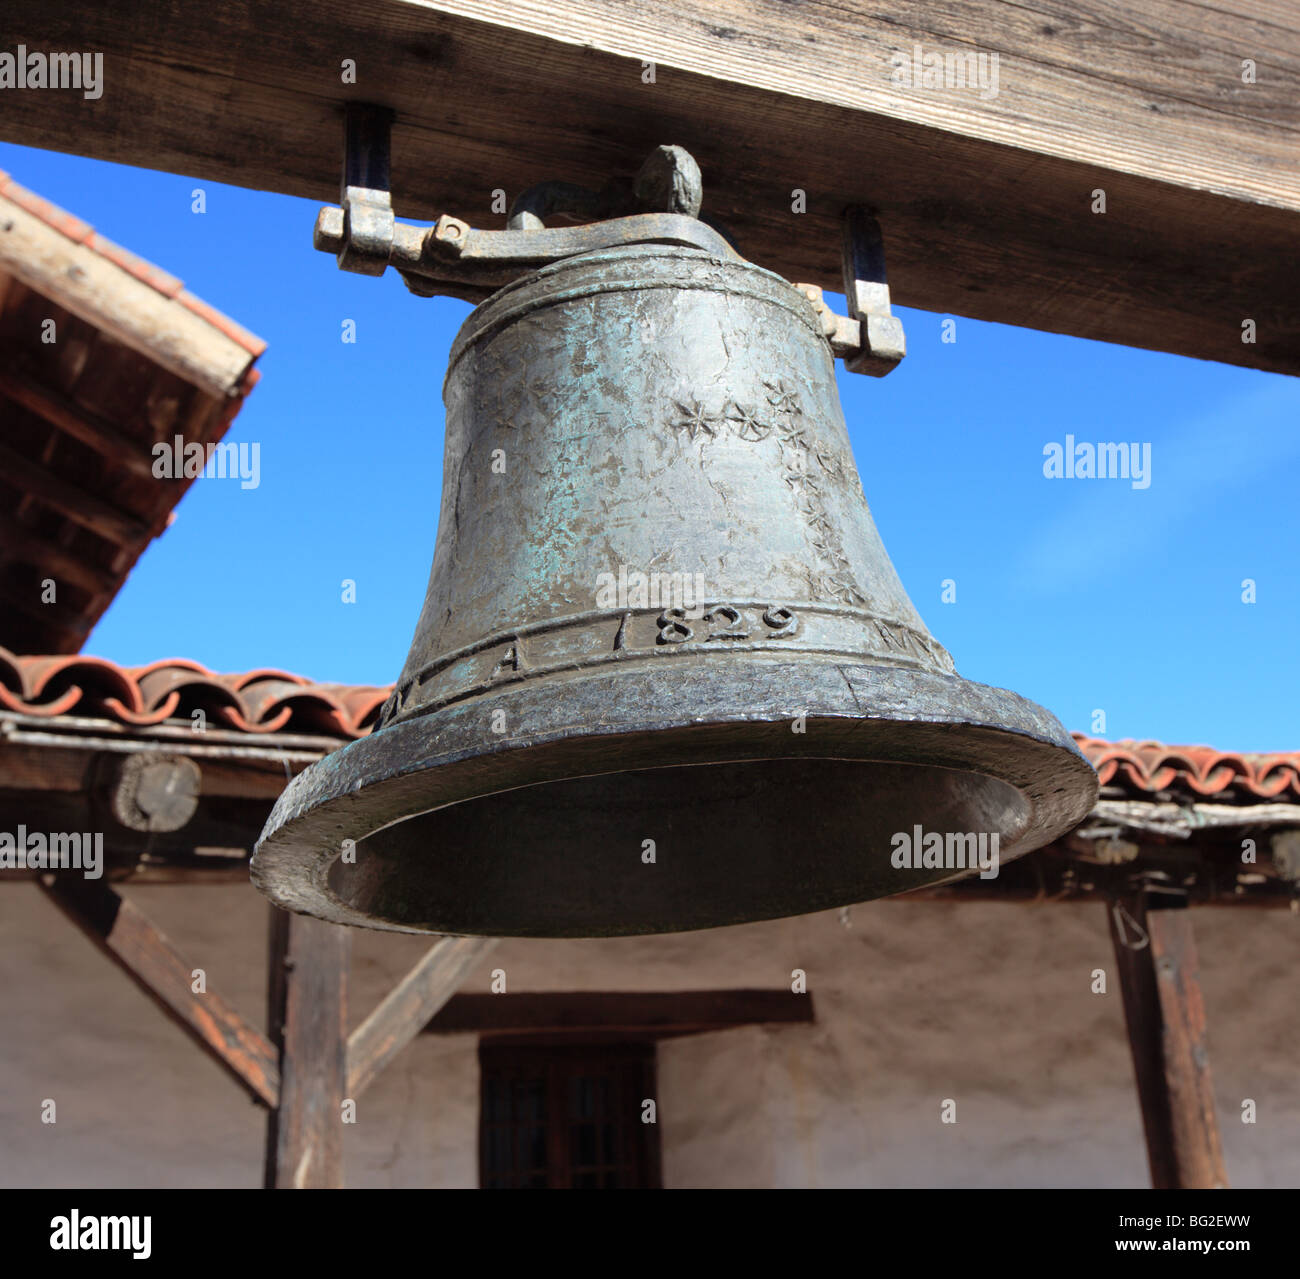 Mission Bell in Sonoma, California, USA. - Stock Image